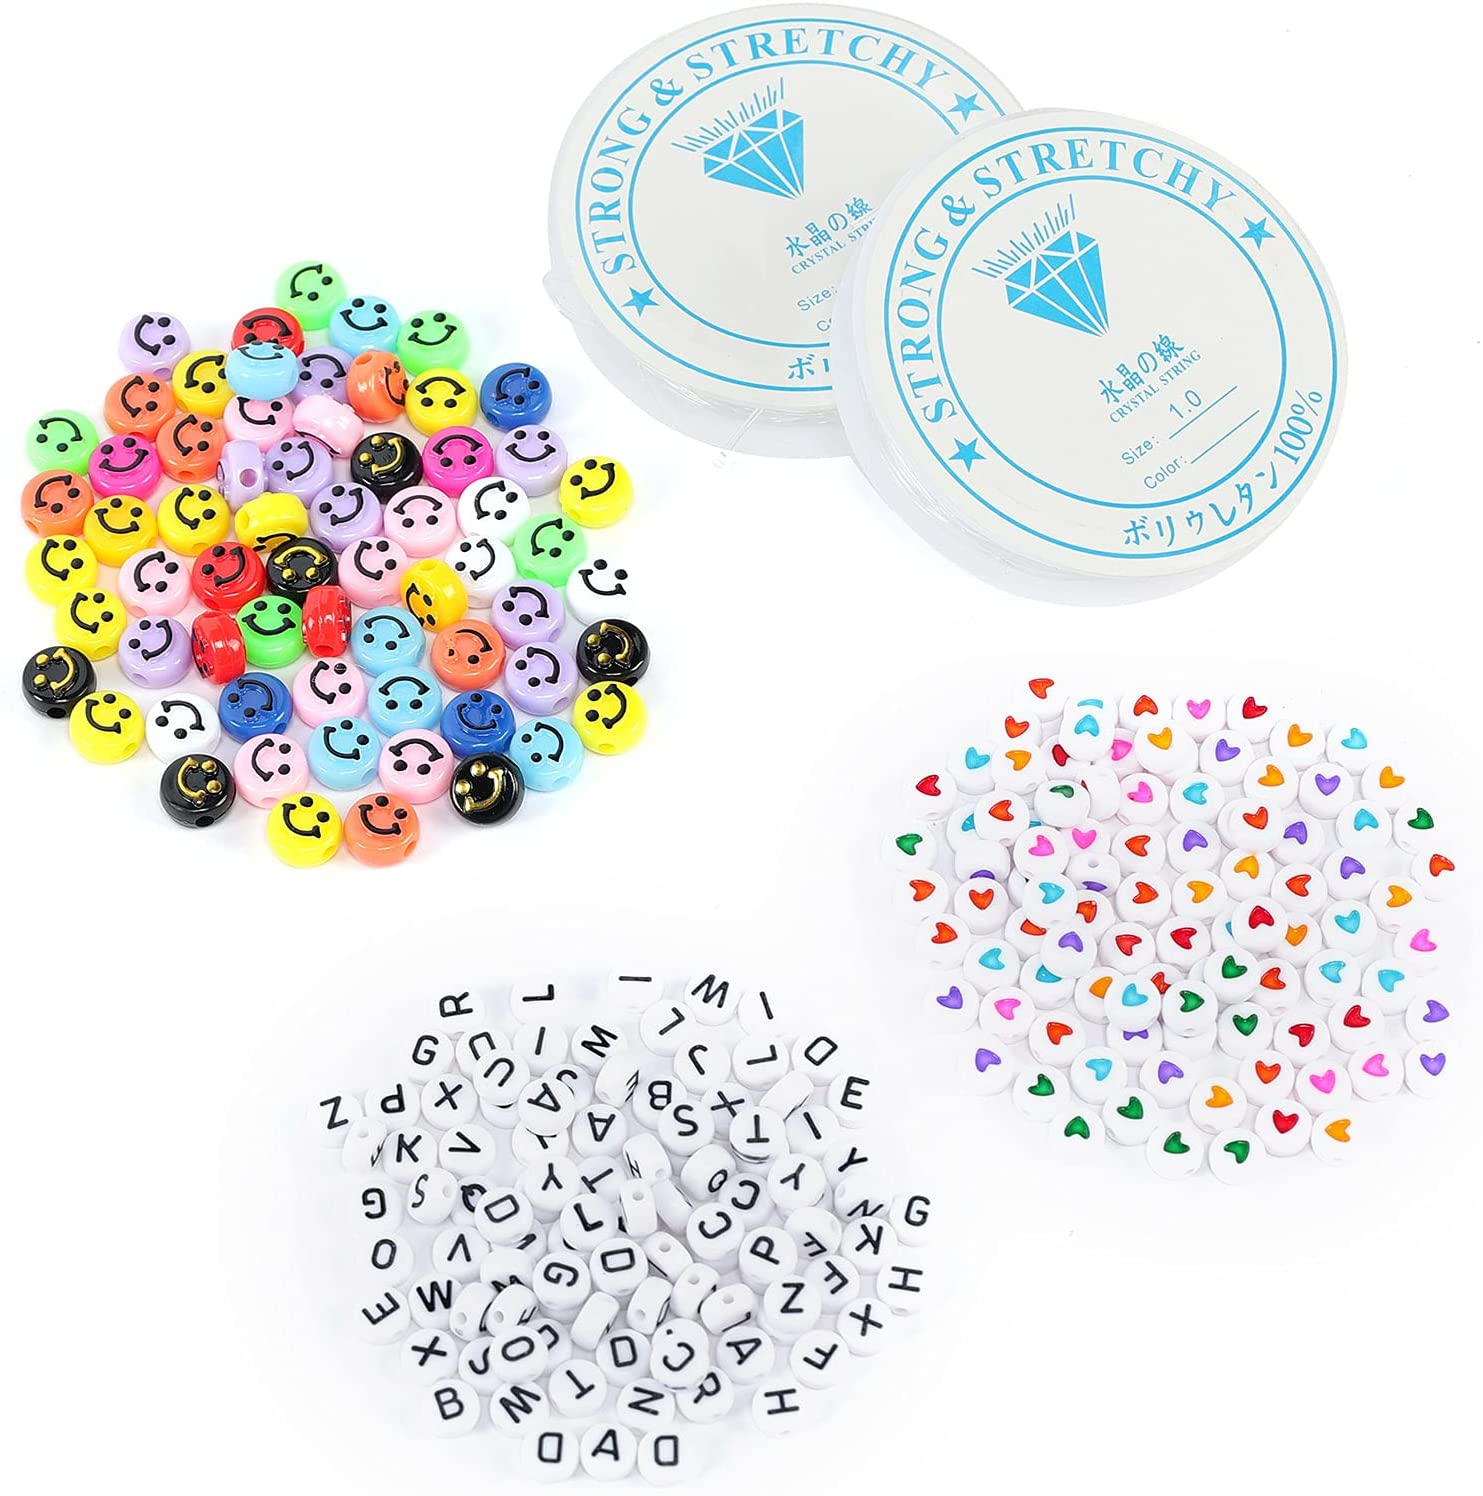 SALENEW very popular 300Pcs Multicolor Acrylic Beads for Jewelry Let Making gift Including